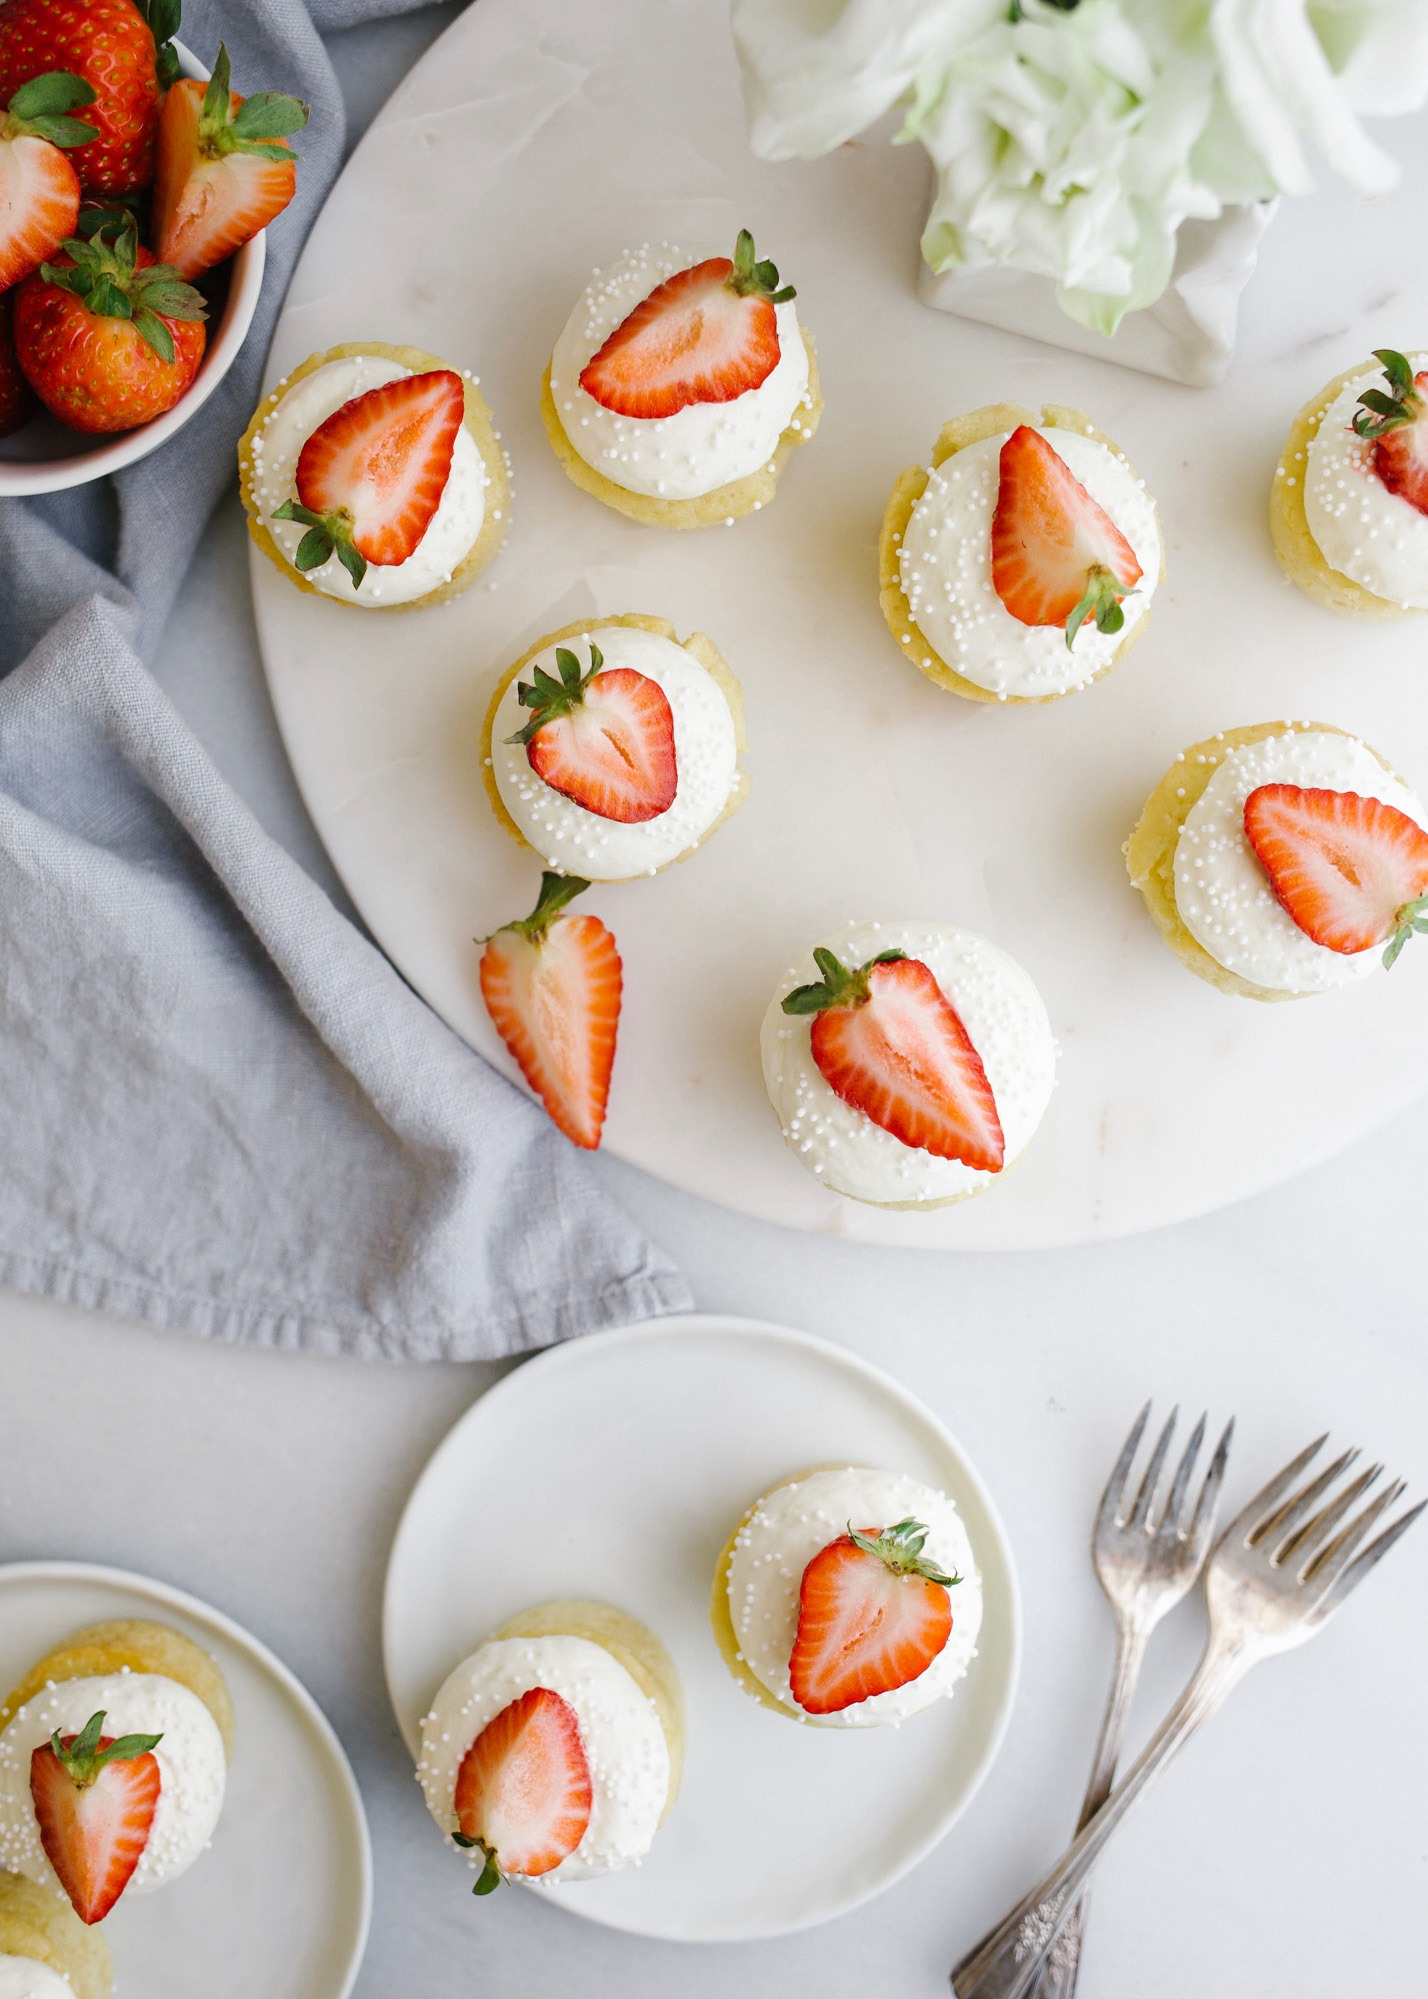 Mini Victoria Cakes by Wood and Spoon. These are mini sponge cupcakes with a strawberry jam filling and whipped cream topping. These are fancy looking little two bite treats perfect for tea parties. Read all about these cute summer desserts on thewoodandspoon.com